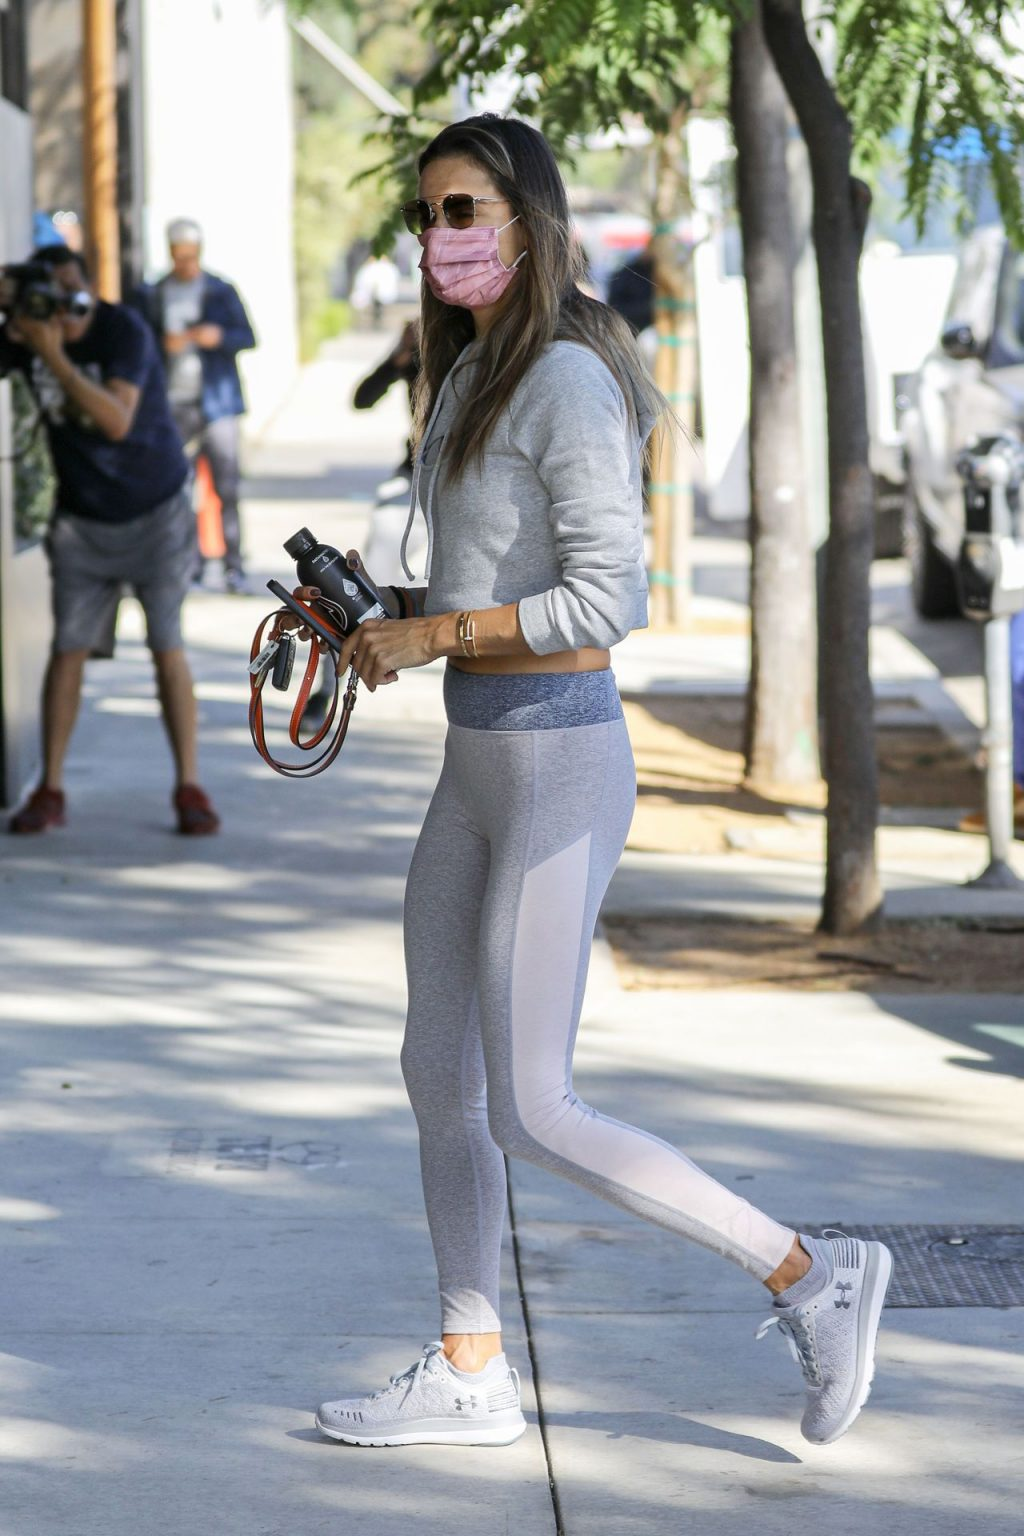 Alessandra Ambrosio Looks Fabulous In Grey Leggings at the Gym (94 Photos)